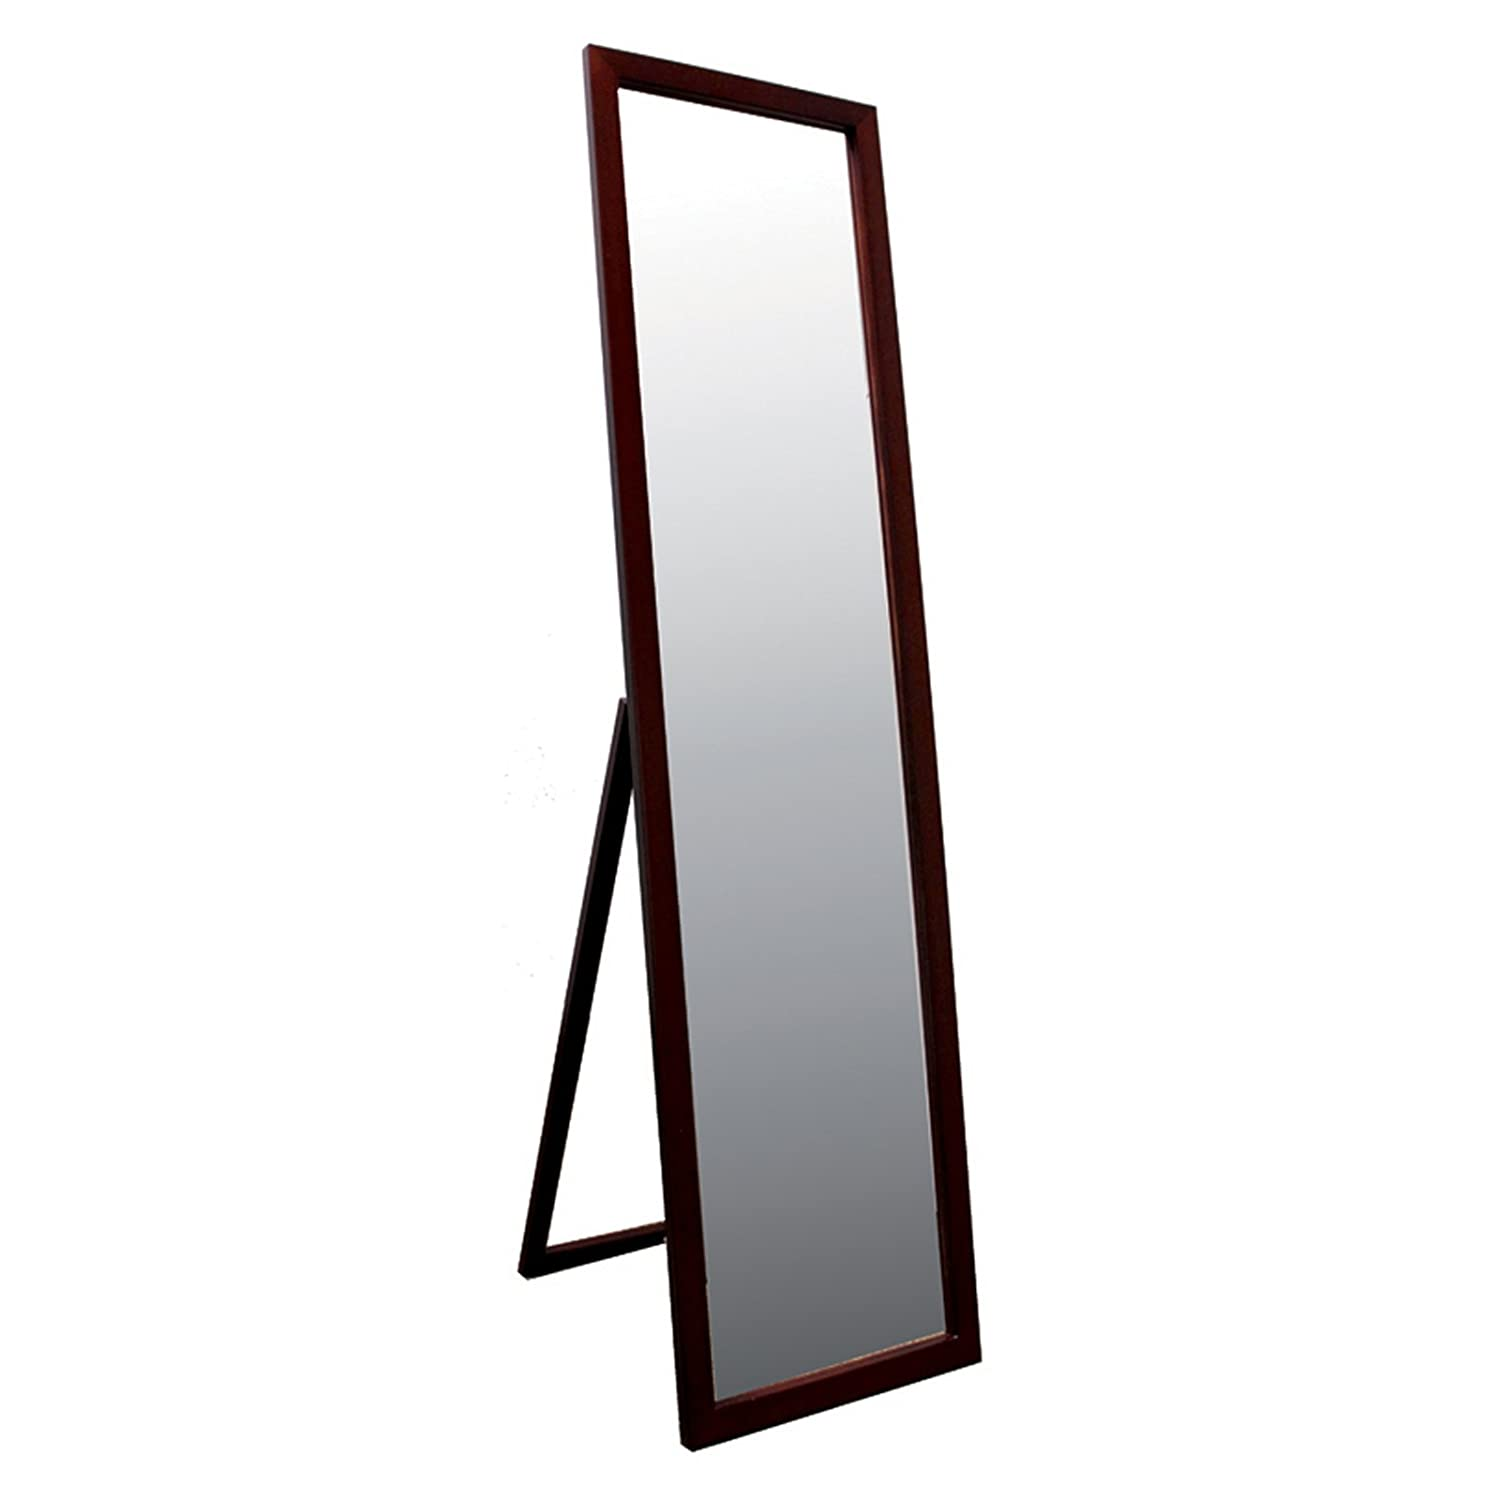 "Full Length Floor Mirror Tall 55"" Free Standing Mount Solid Hardwood Frame Vertical Leaning by All4you"